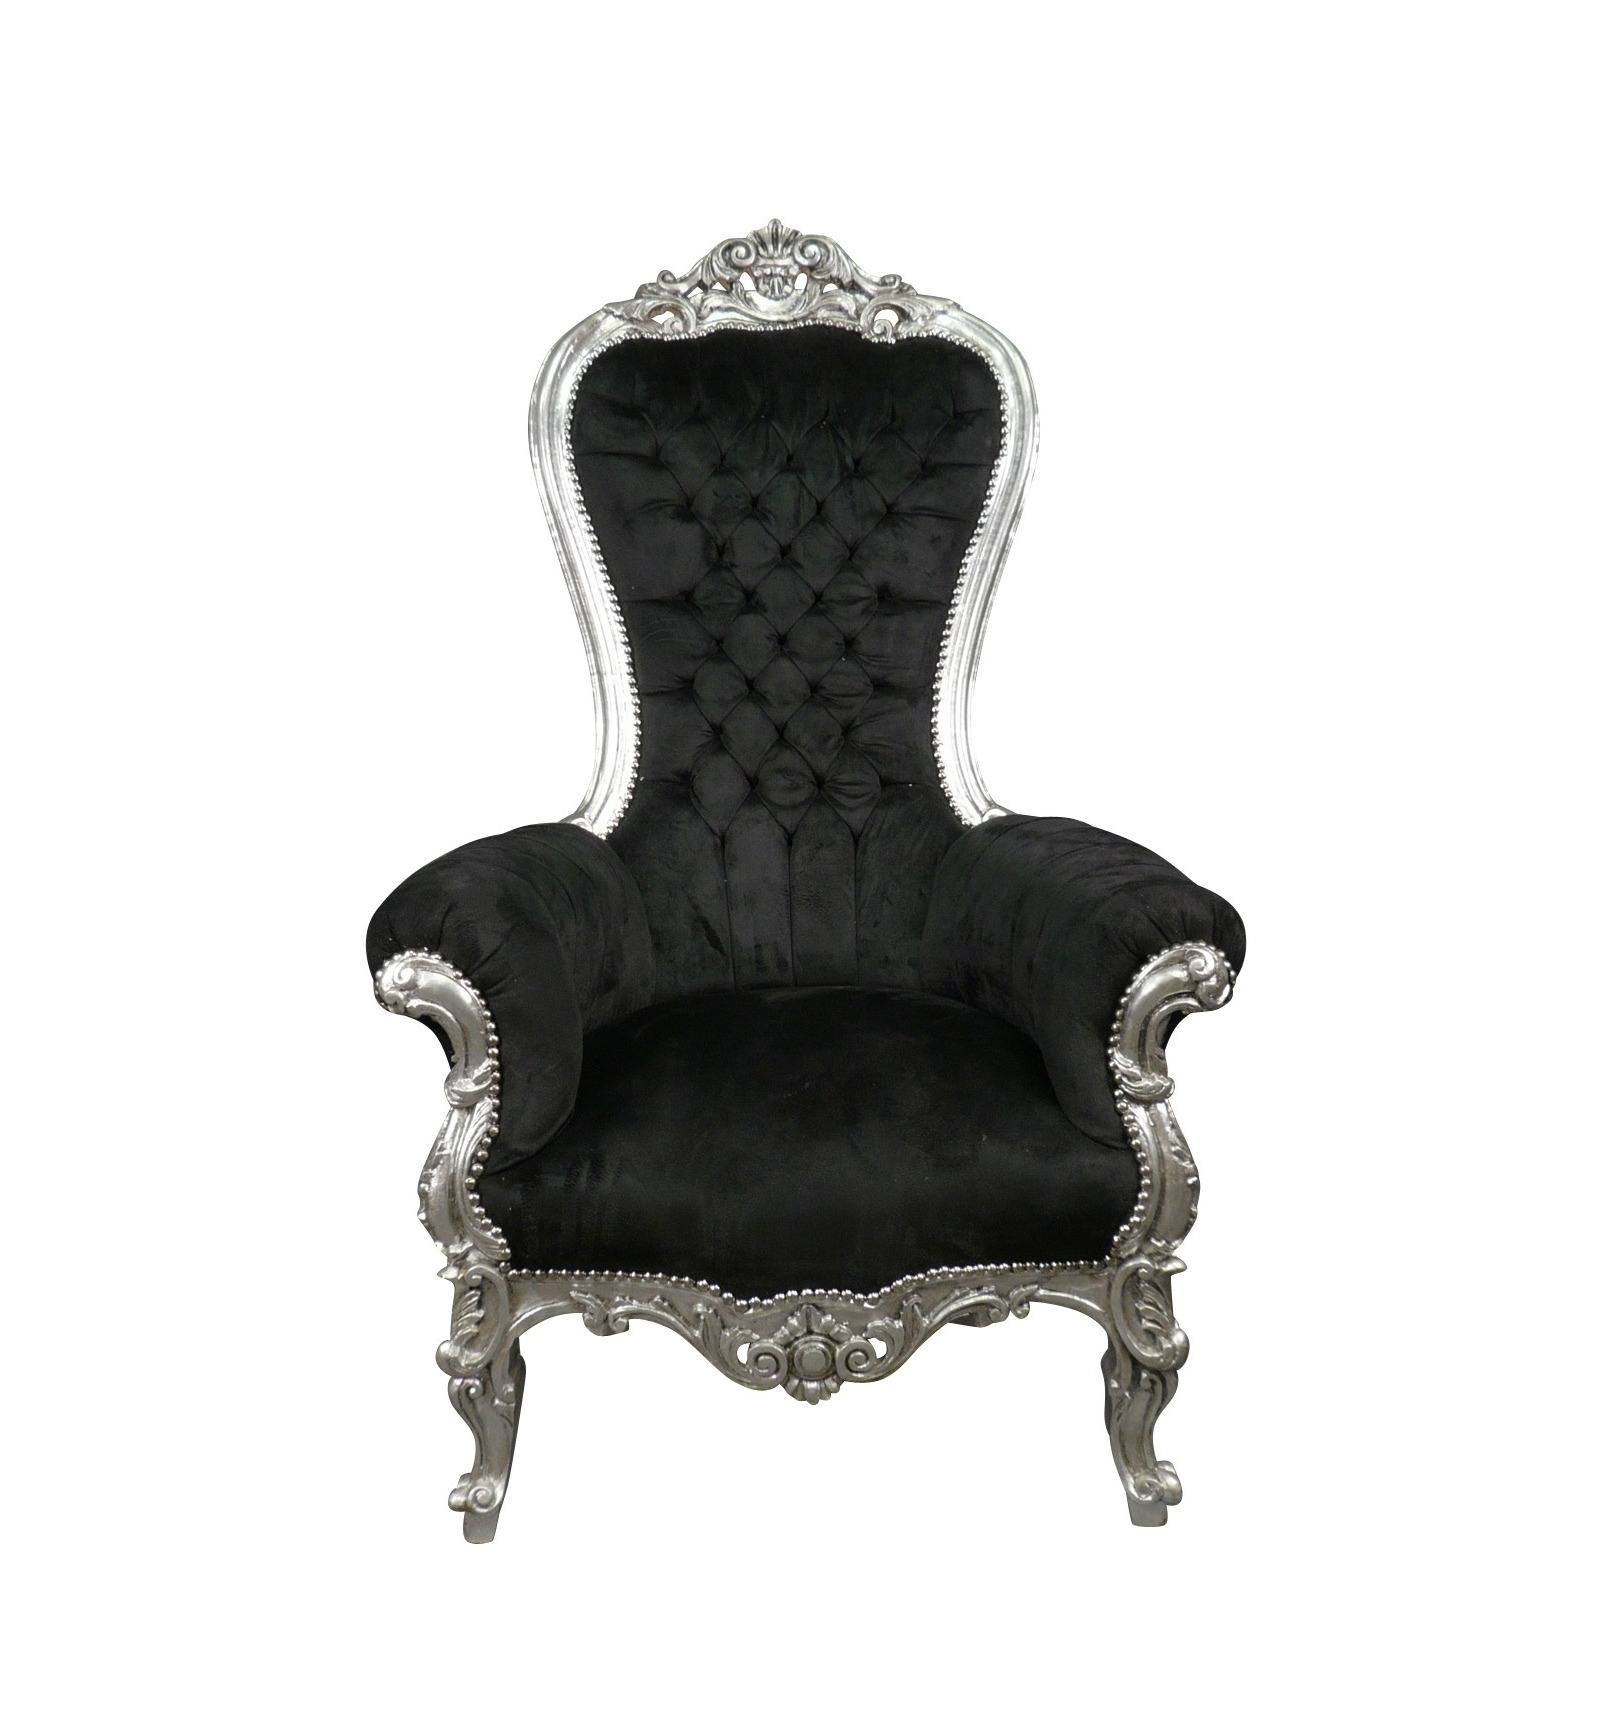 black velvet throne chair small living room chairs baroque in and wood silver